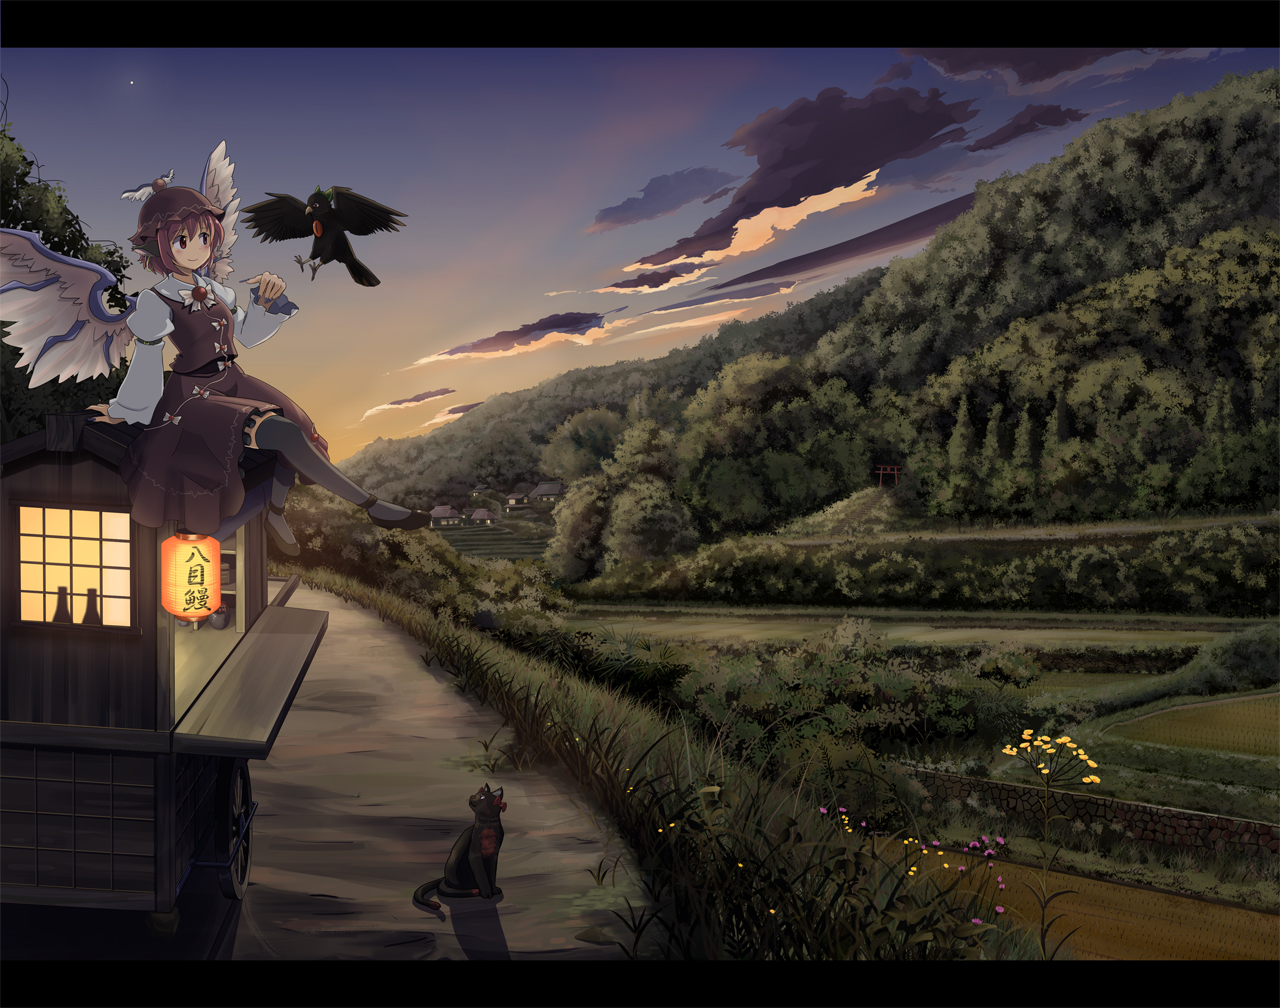 animal bird cat clouds dress grass hat kaenbyou_rin landscape multiple_tails mystia_lorelei pink_hair red_eyes reiuji_utsuho scenic sky sukemasa tail thighhighs touhou tree wings